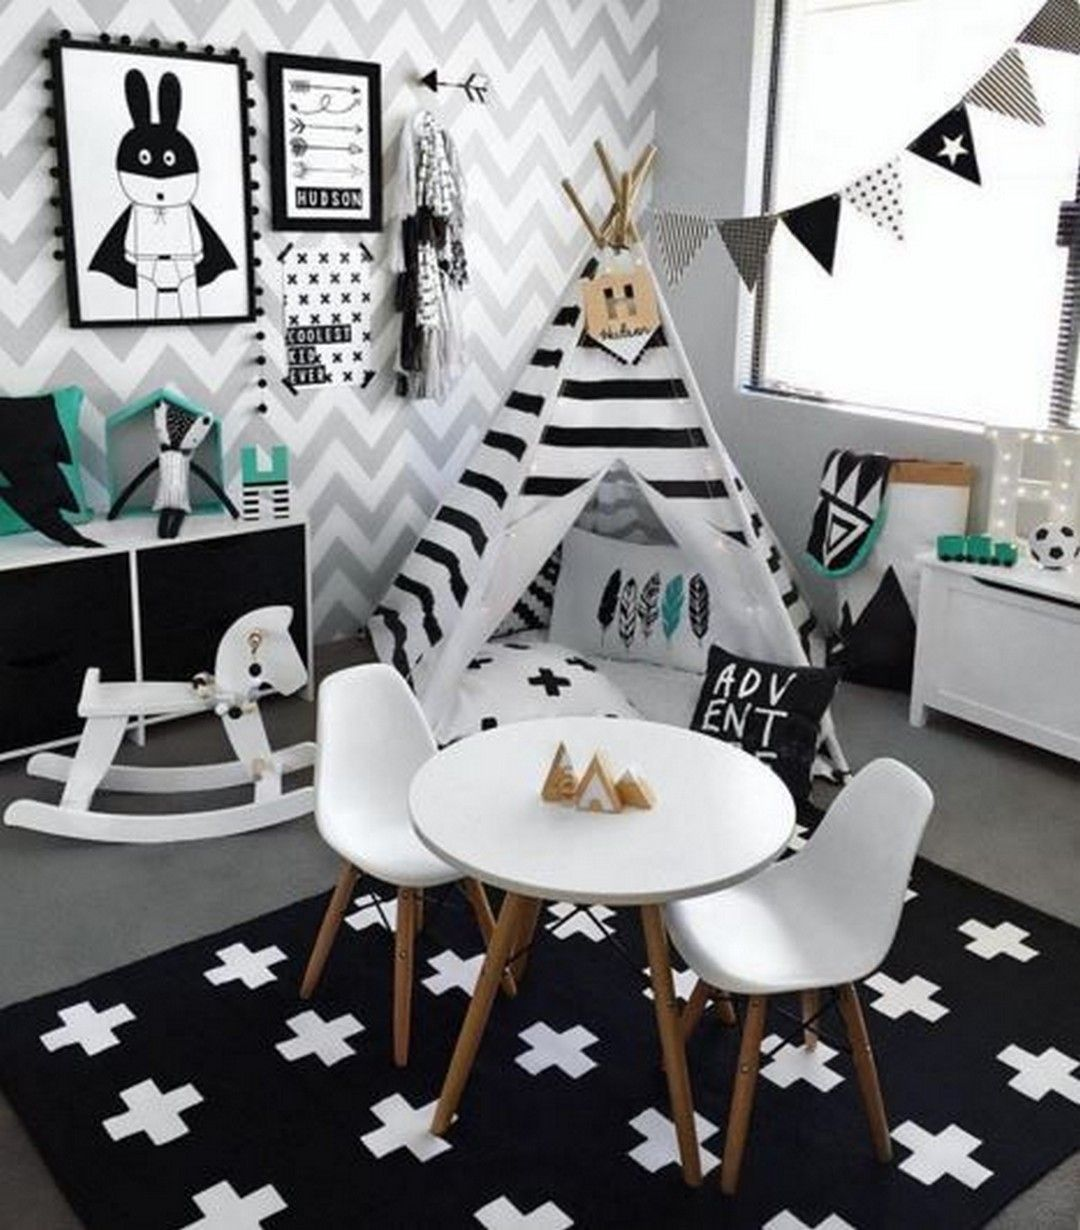 120+ Black And White Home Decor Inspiration images